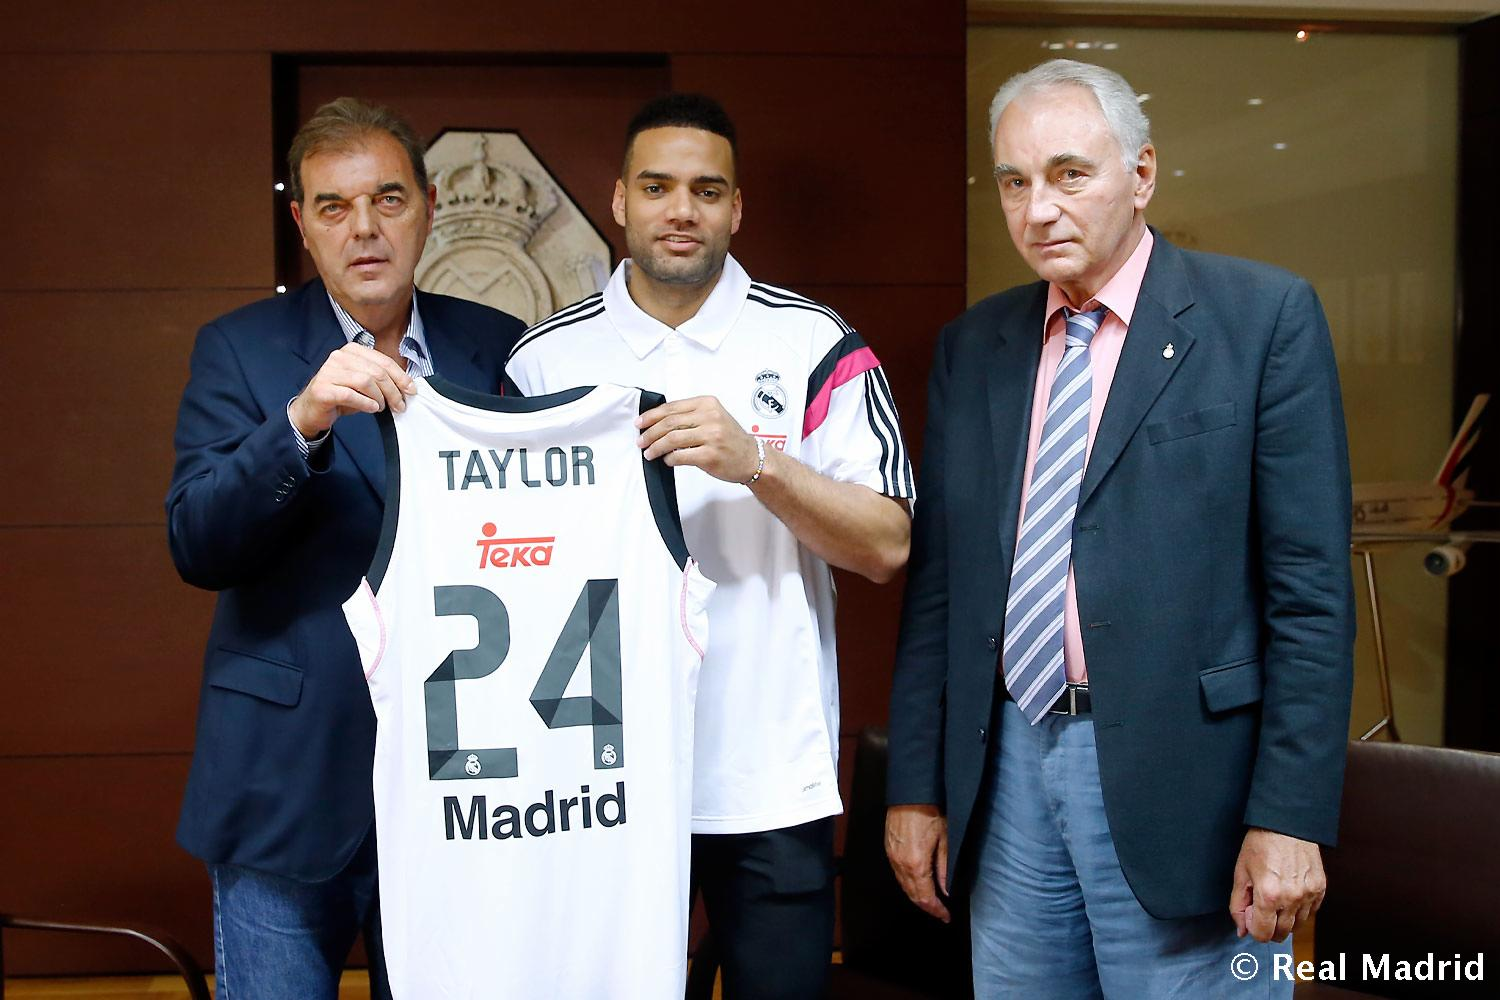 Real Madrid - Firma de Jeffery Taylor - 27-08-2015